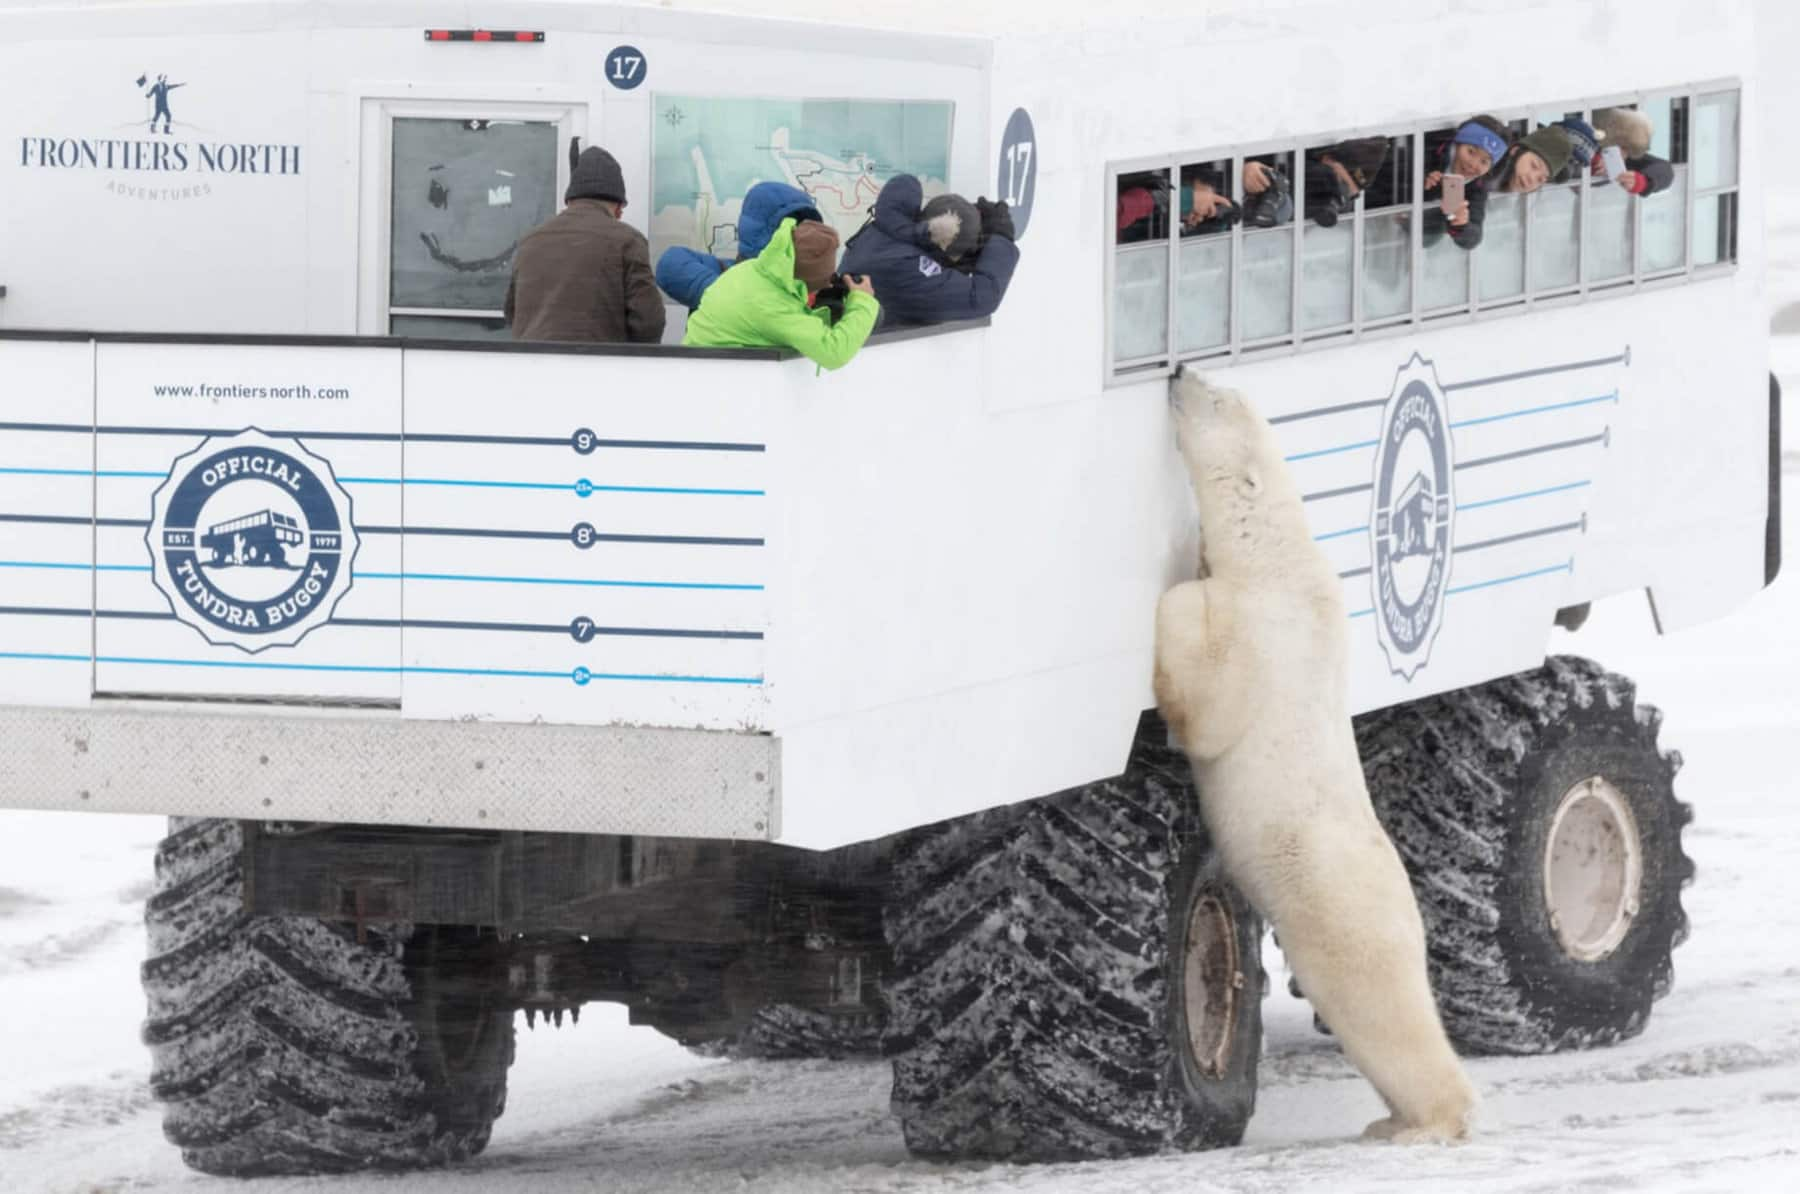 A polar bear stands up to lean against a large truck filled with people looking out the vehicle's windows. The truck is in a snowy landscape.